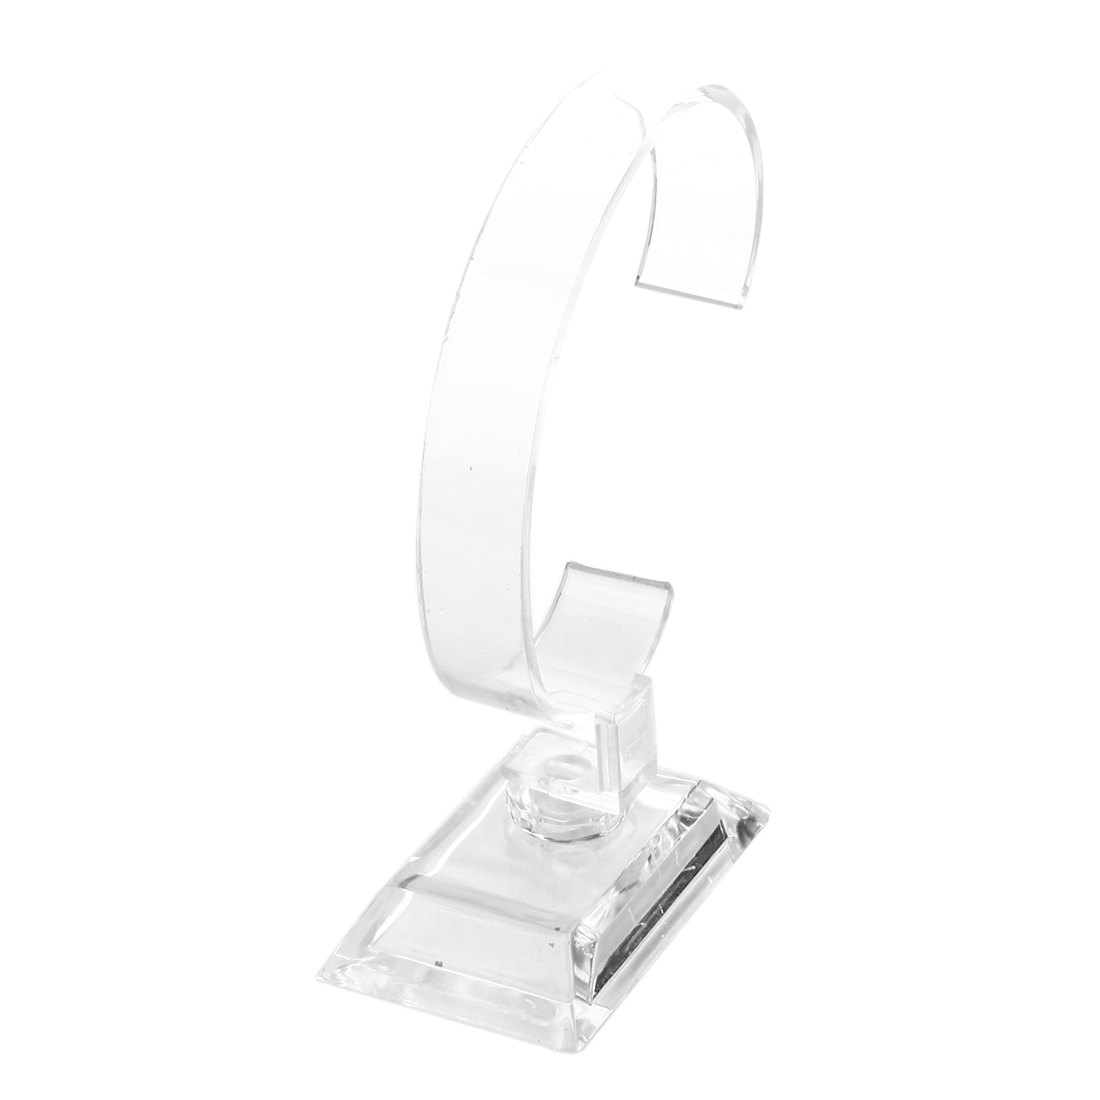 Watch Stand, Holder, Carrier For Watch